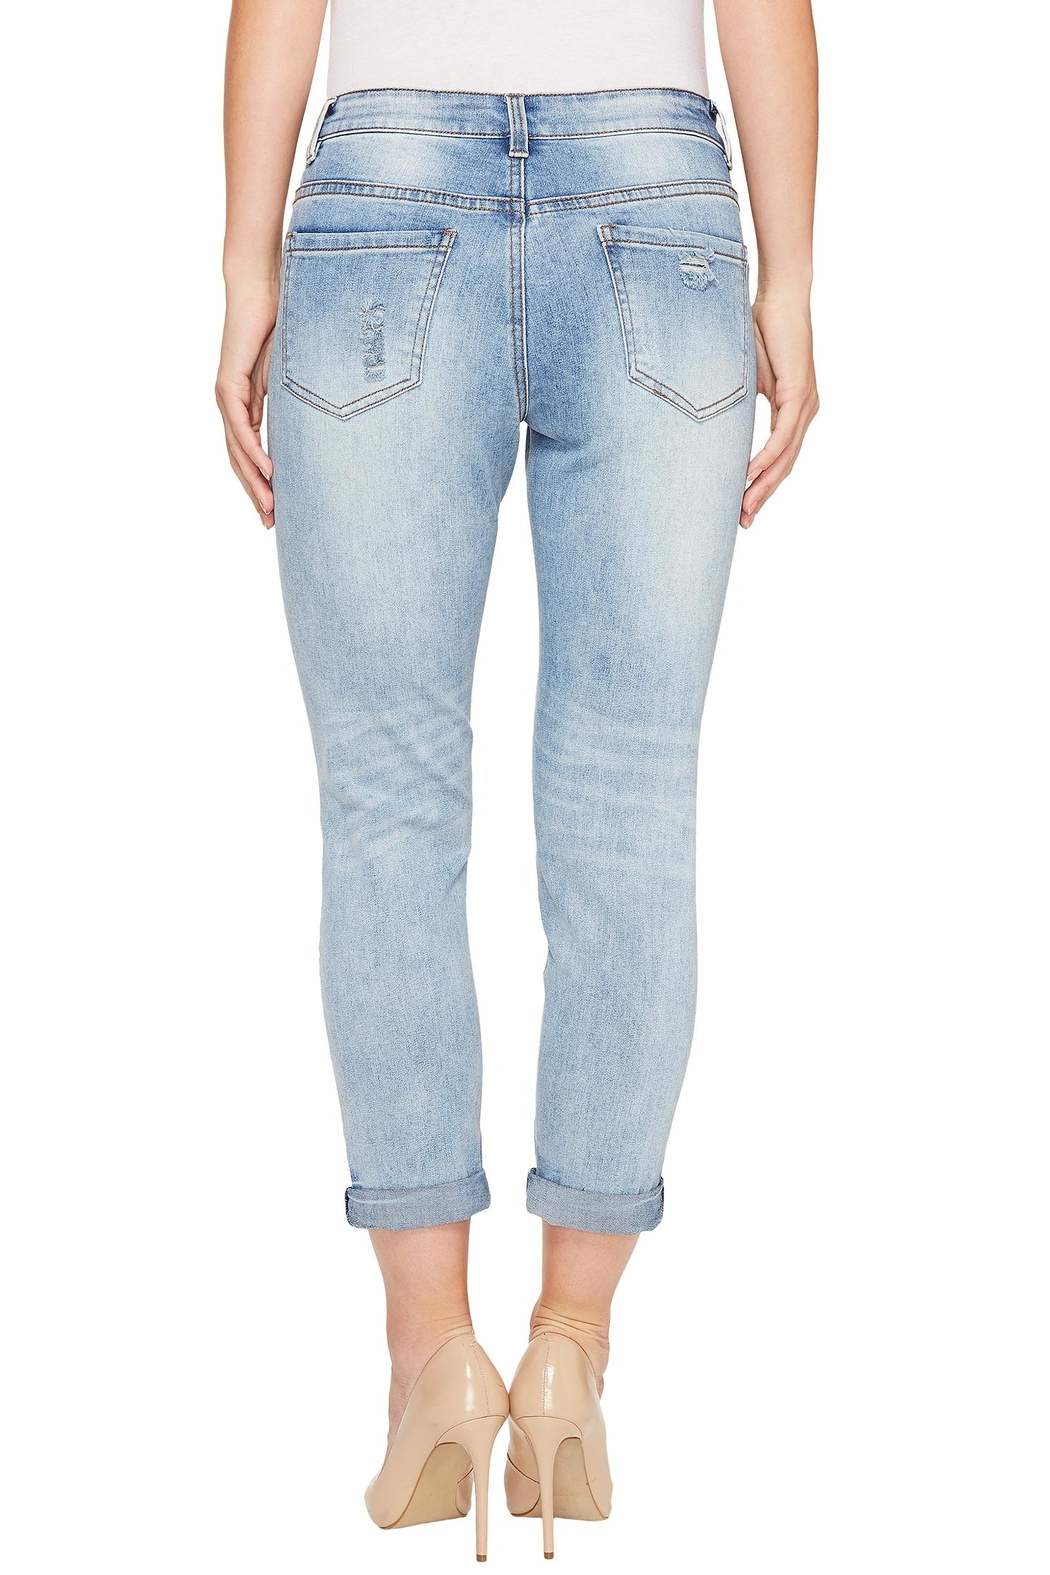 Tribal Jeans Distressed Boyfriend Jeans from Massachusetts by ...